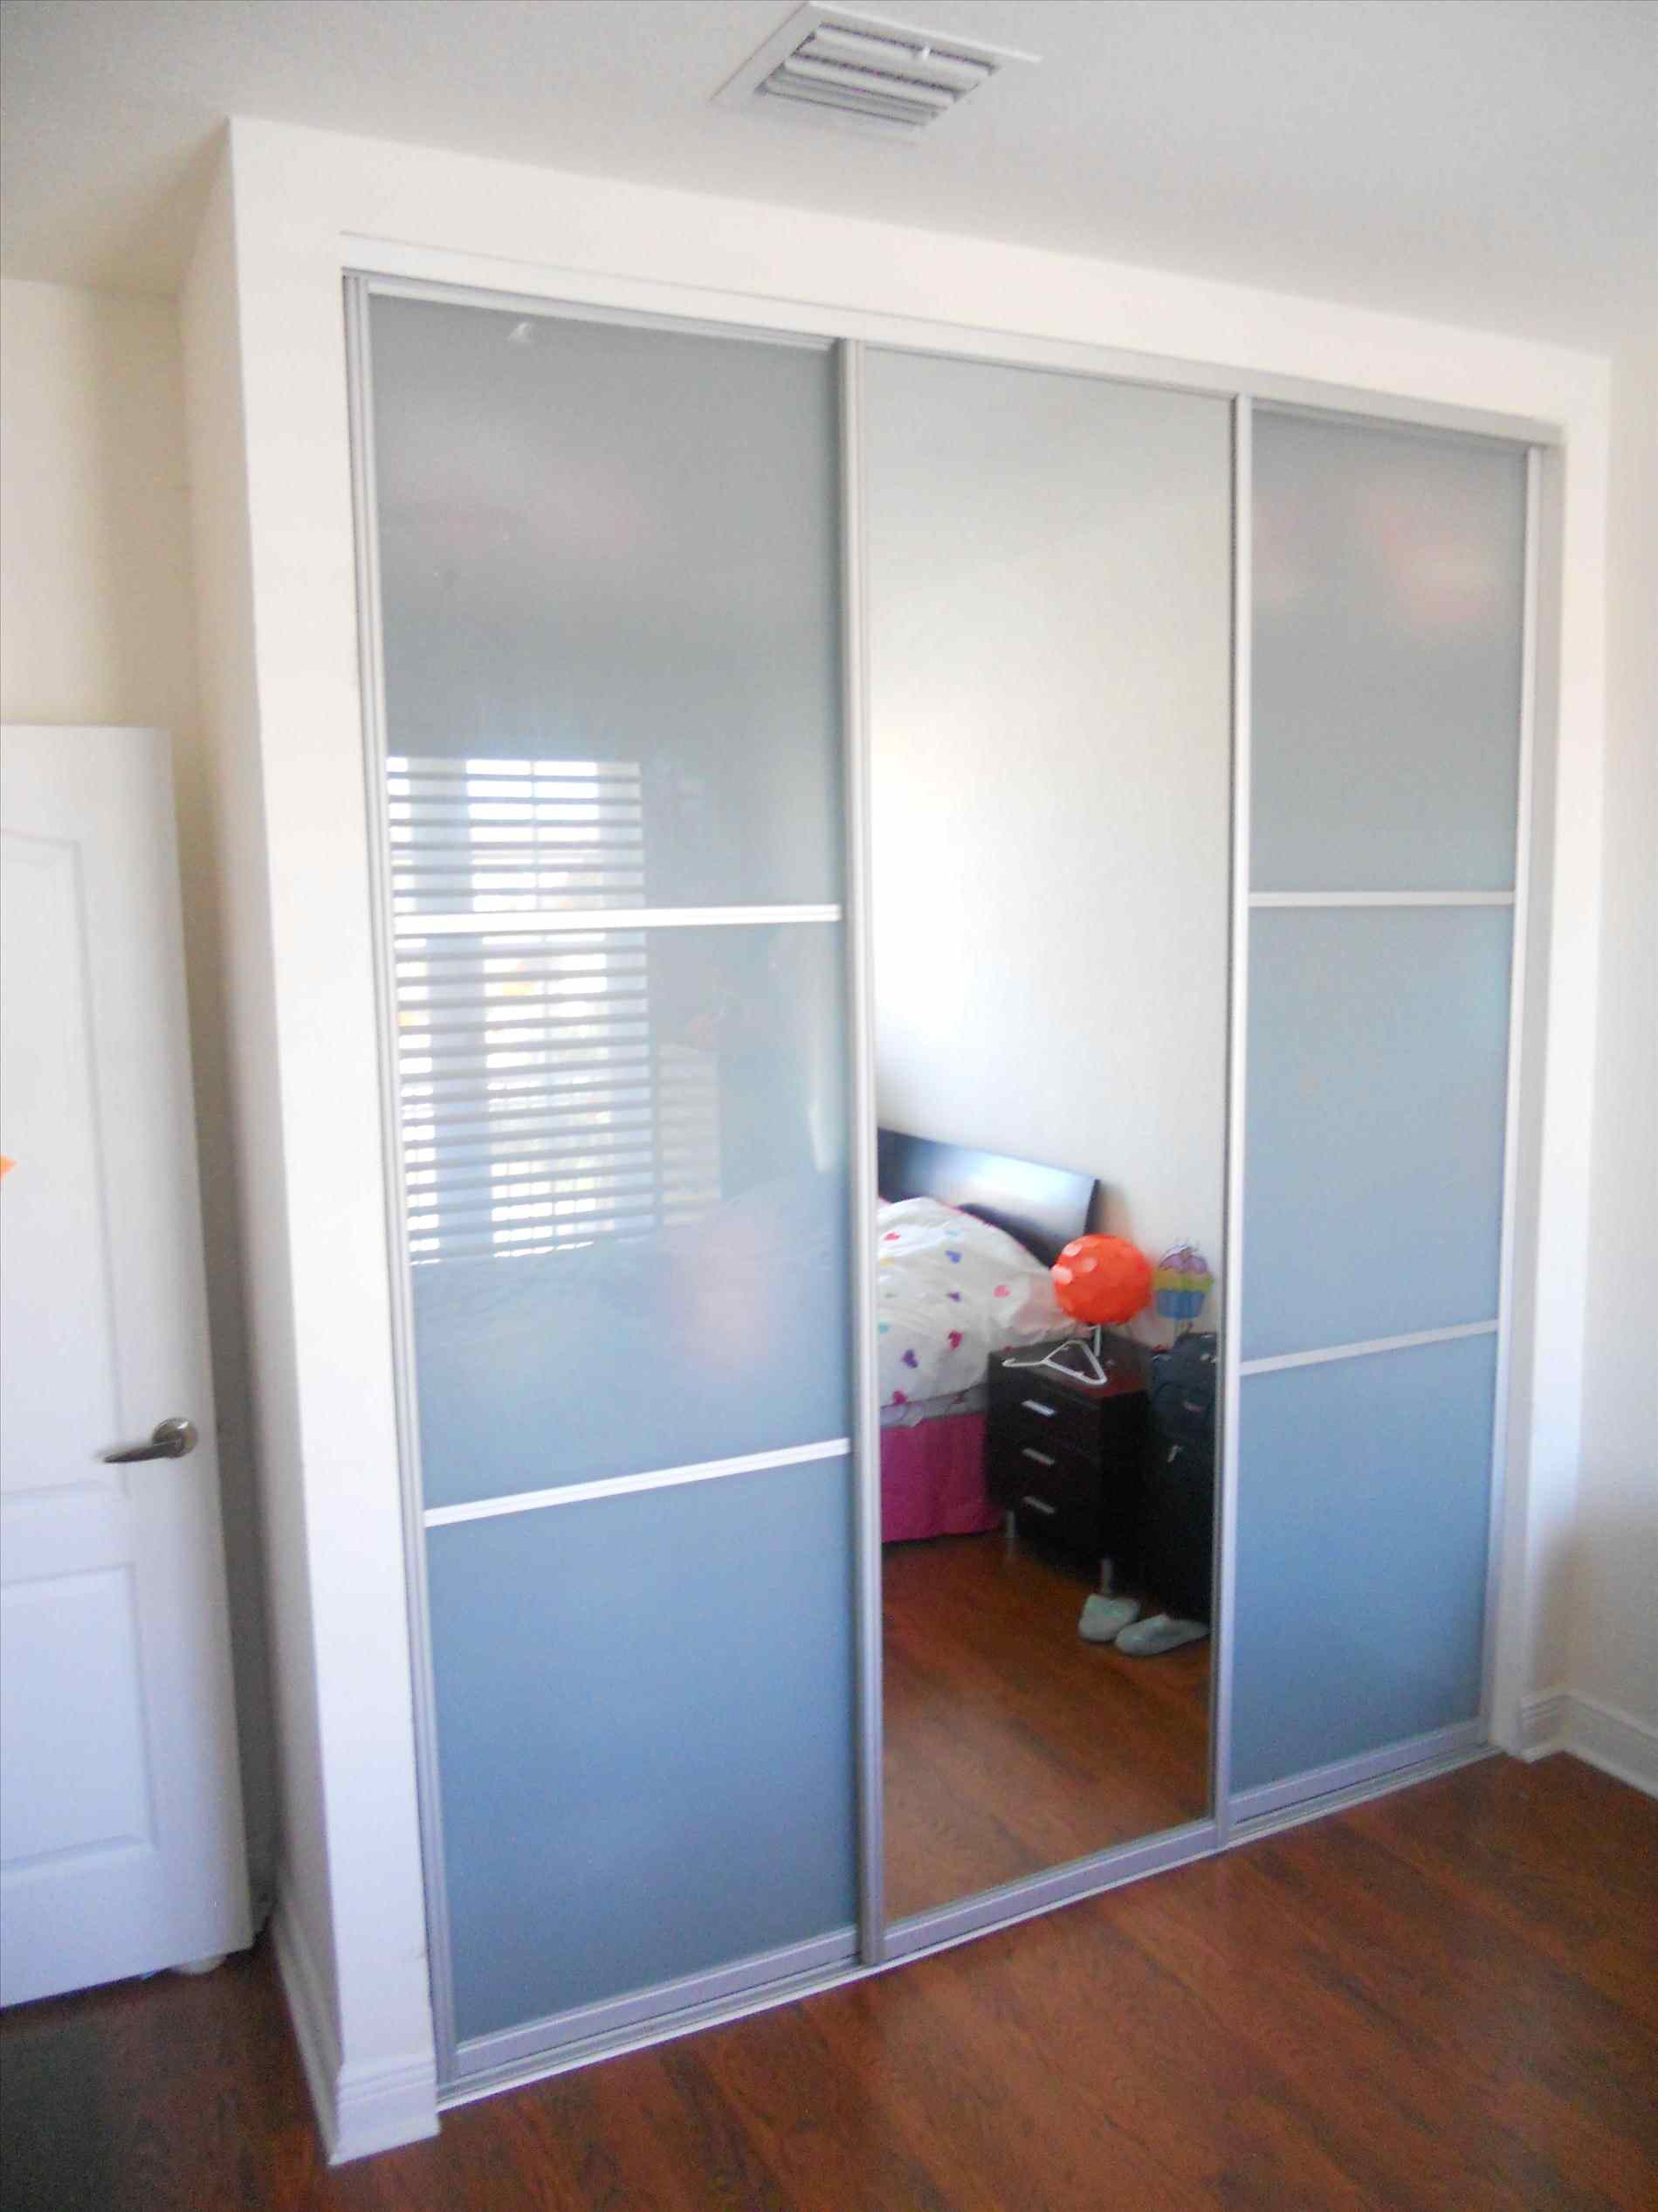 Ideas french sliding doors home depot home depot sliding doors french sliding doors home depot home depot sliding doors sliding door track home depot planetlyrics Image collections